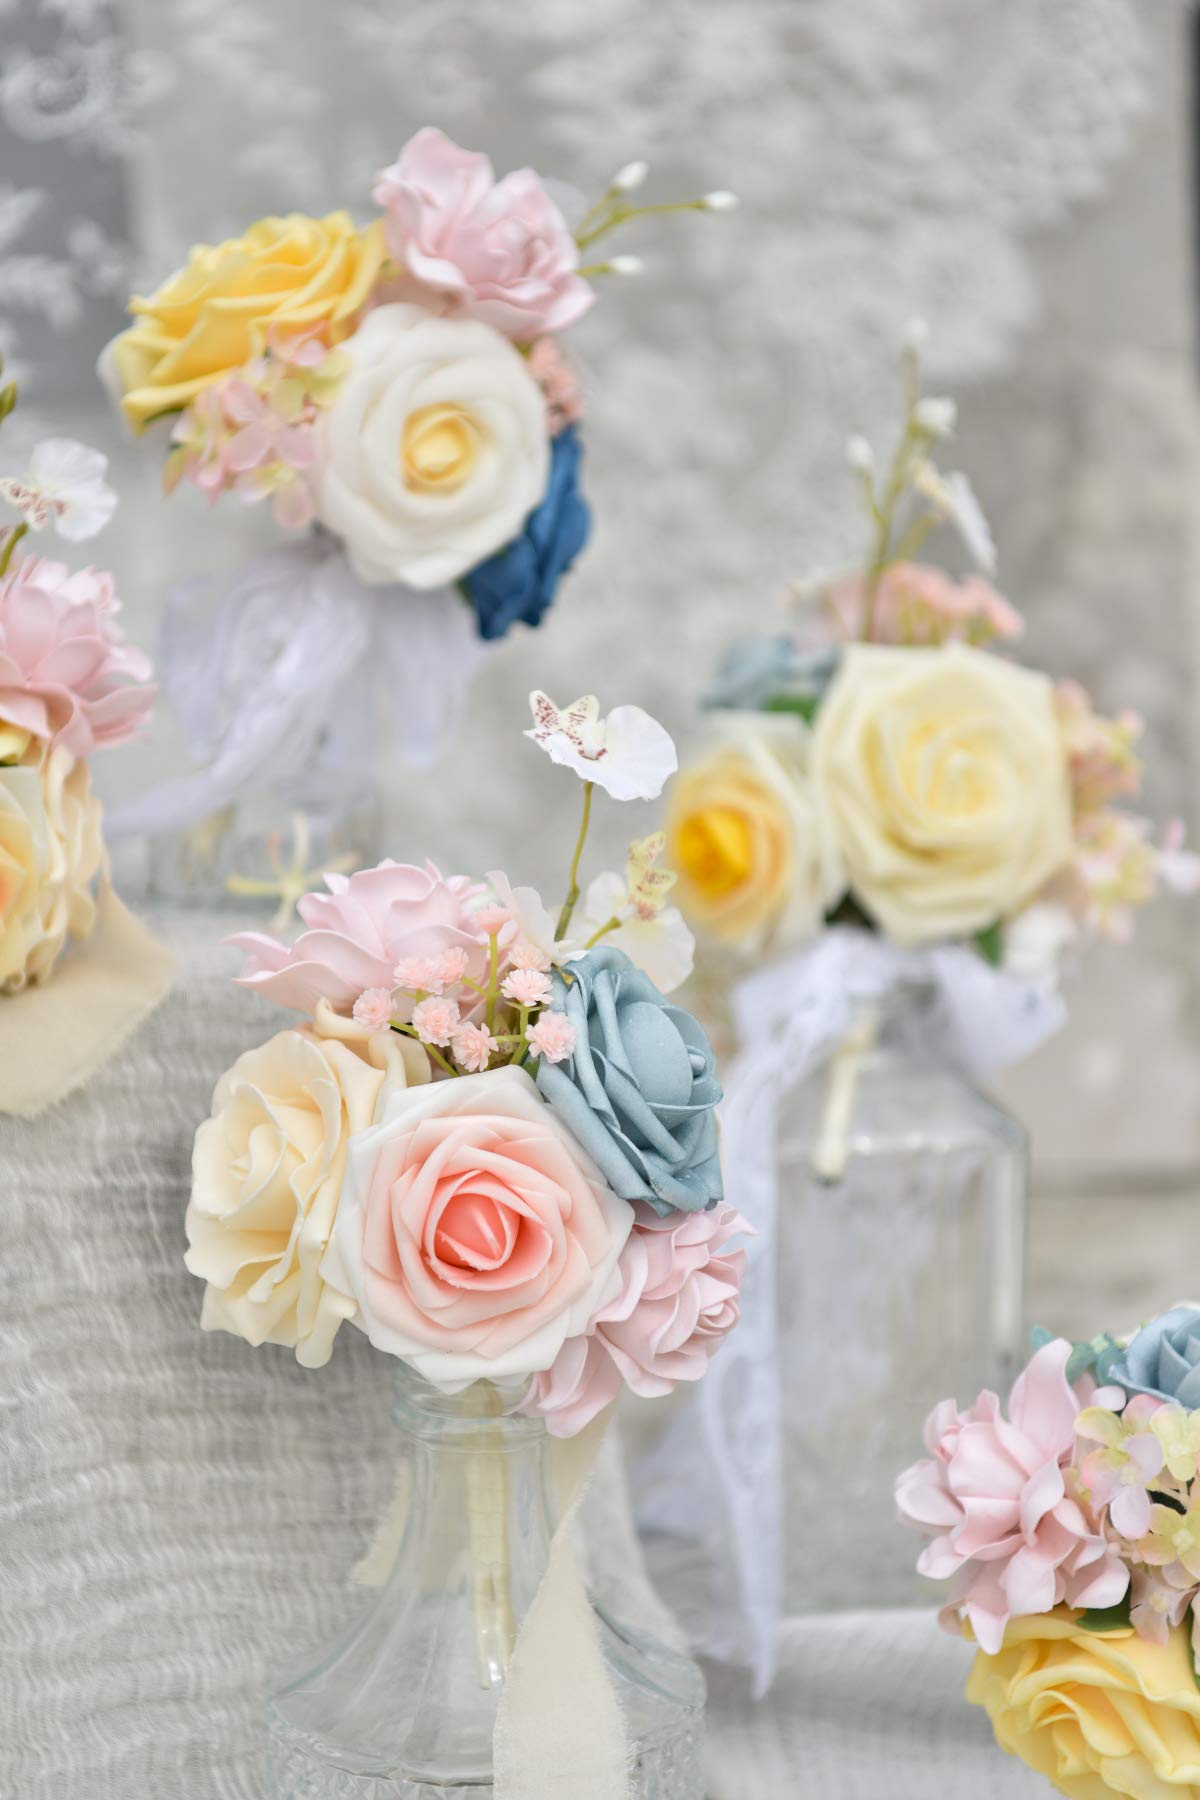 Lings-moment-Artificial-Gardenia-Flowers-wStem-for-DIY-Wedding-Bouquets-Centerpieces-Arrangements-Party-Baby-Shower-Home-Decorations